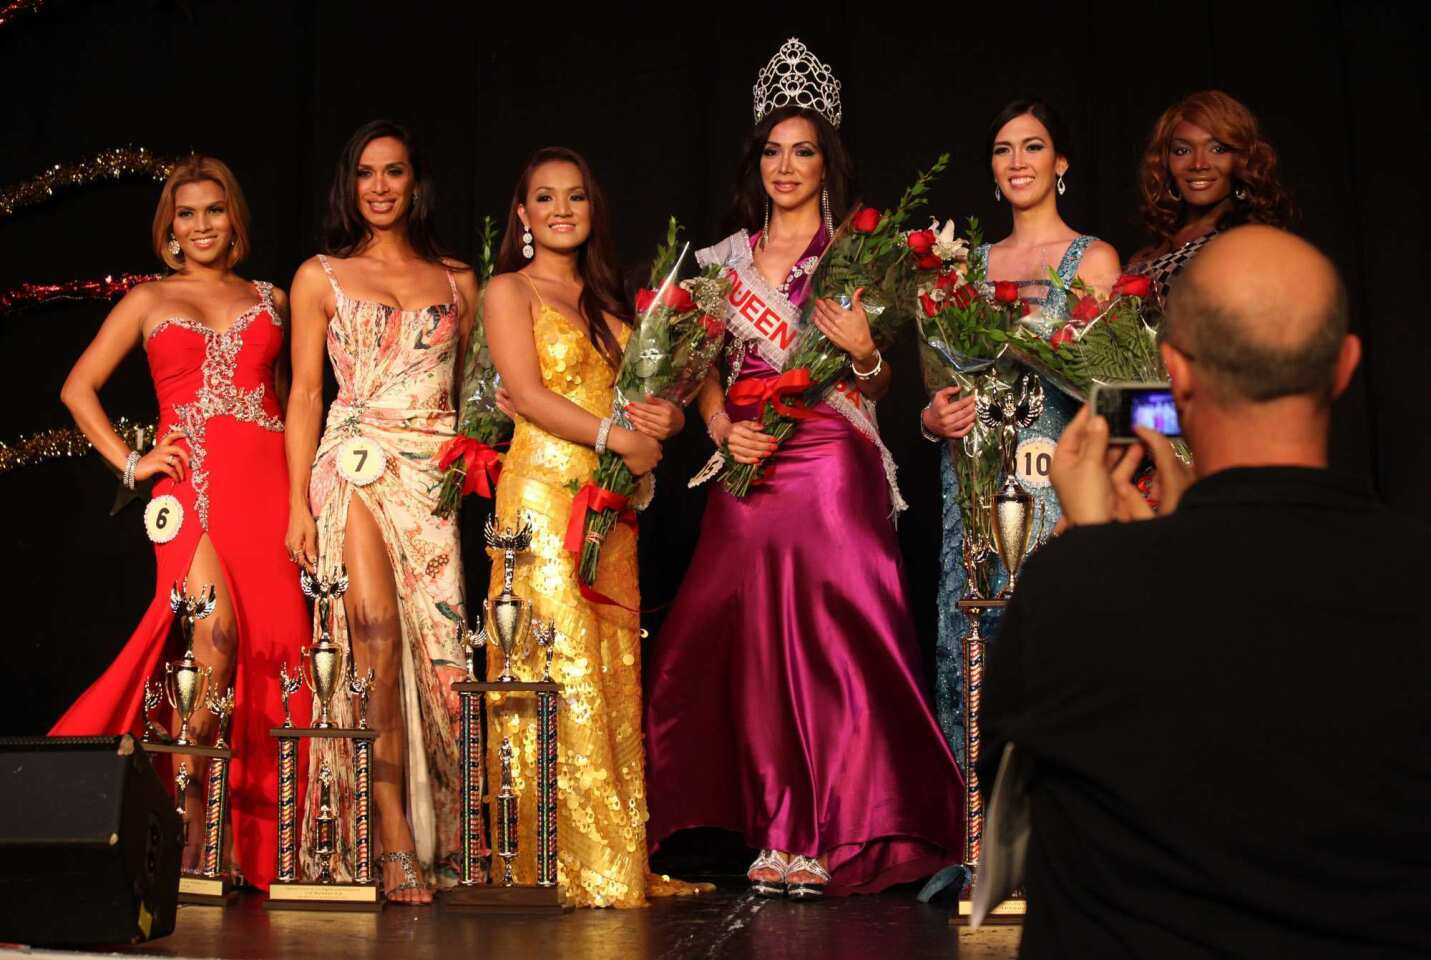 Miss Queen USA pageant